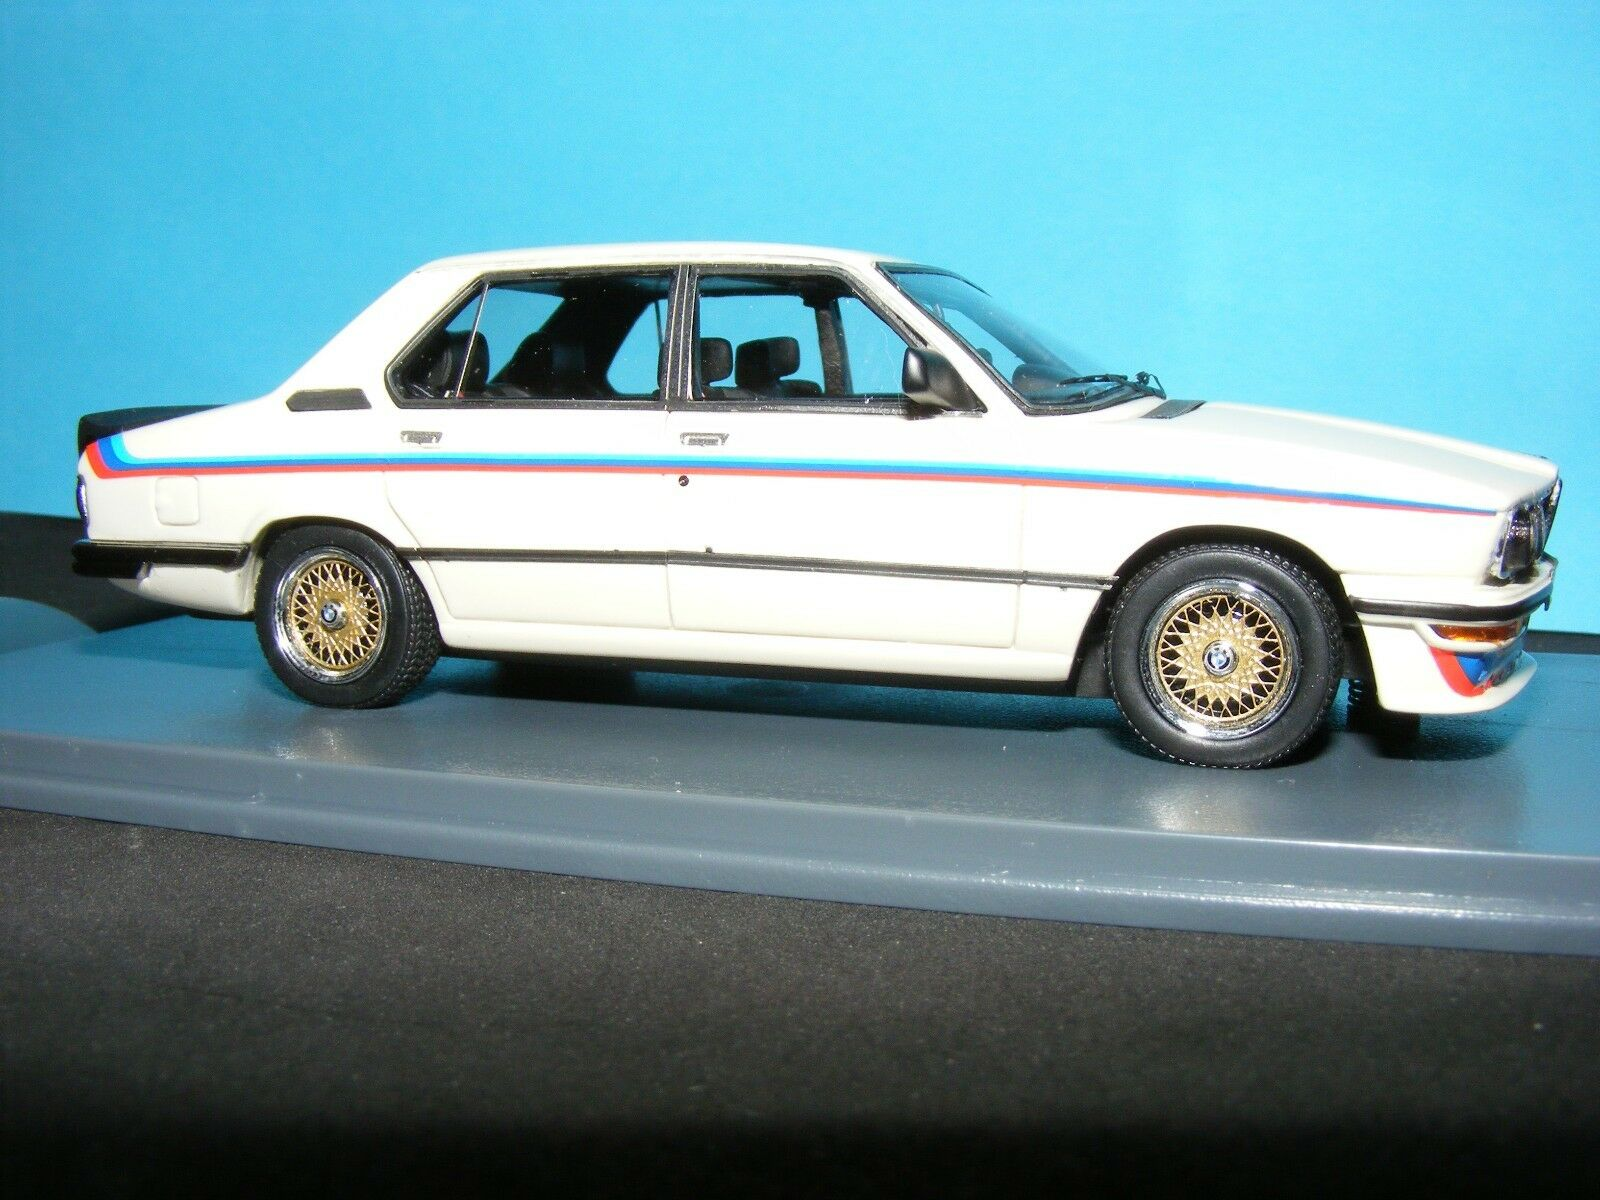 BMW M535i (E12) 1977 New Neo White with M series decal set 1 43rd. Scale Rare